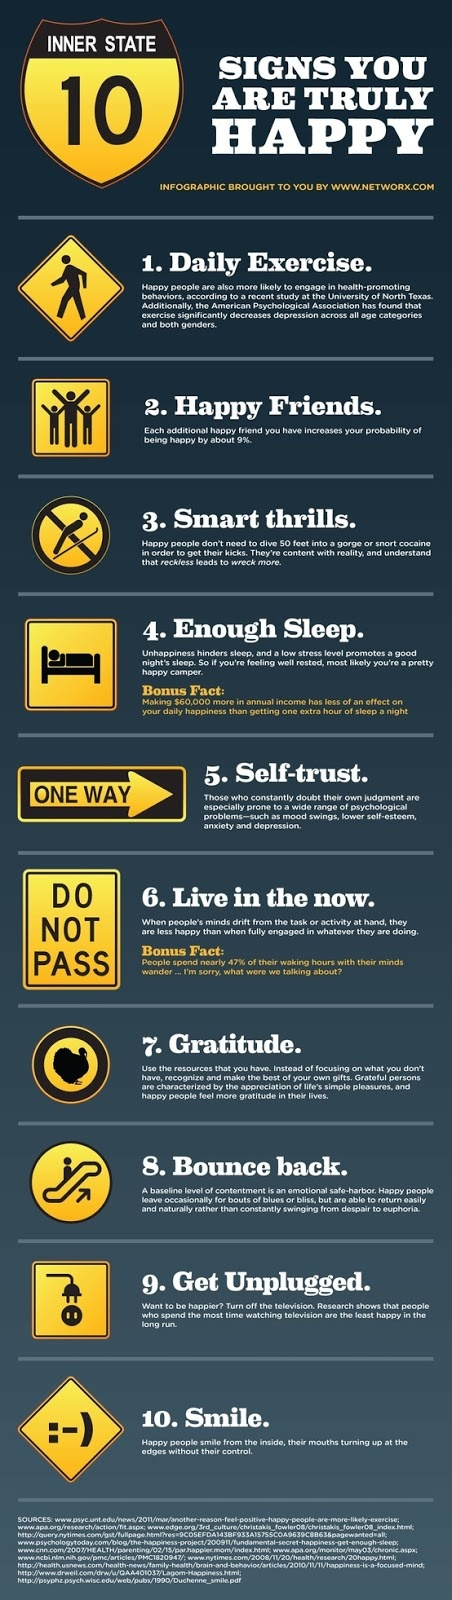 10 signs that you are truly happy